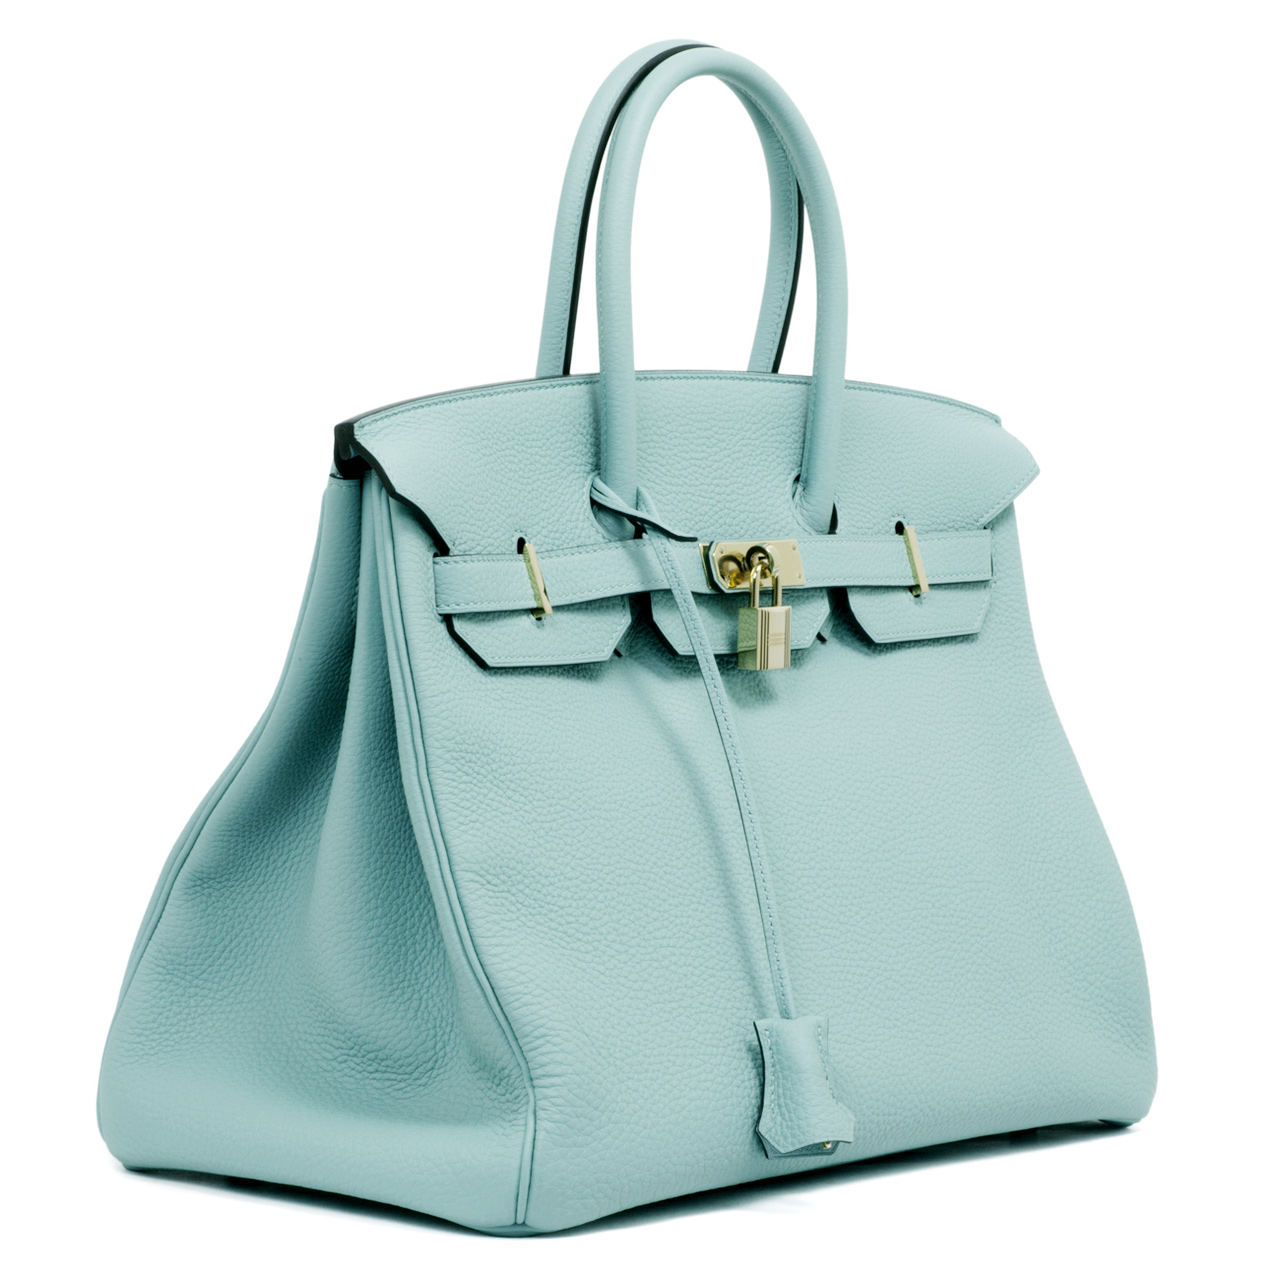 Our Selection Of Authentic Pre Owned Designer Handbags Is Constantly Growing With New Styles Being Put Out For Daily We Have A Highly Knowledgeable